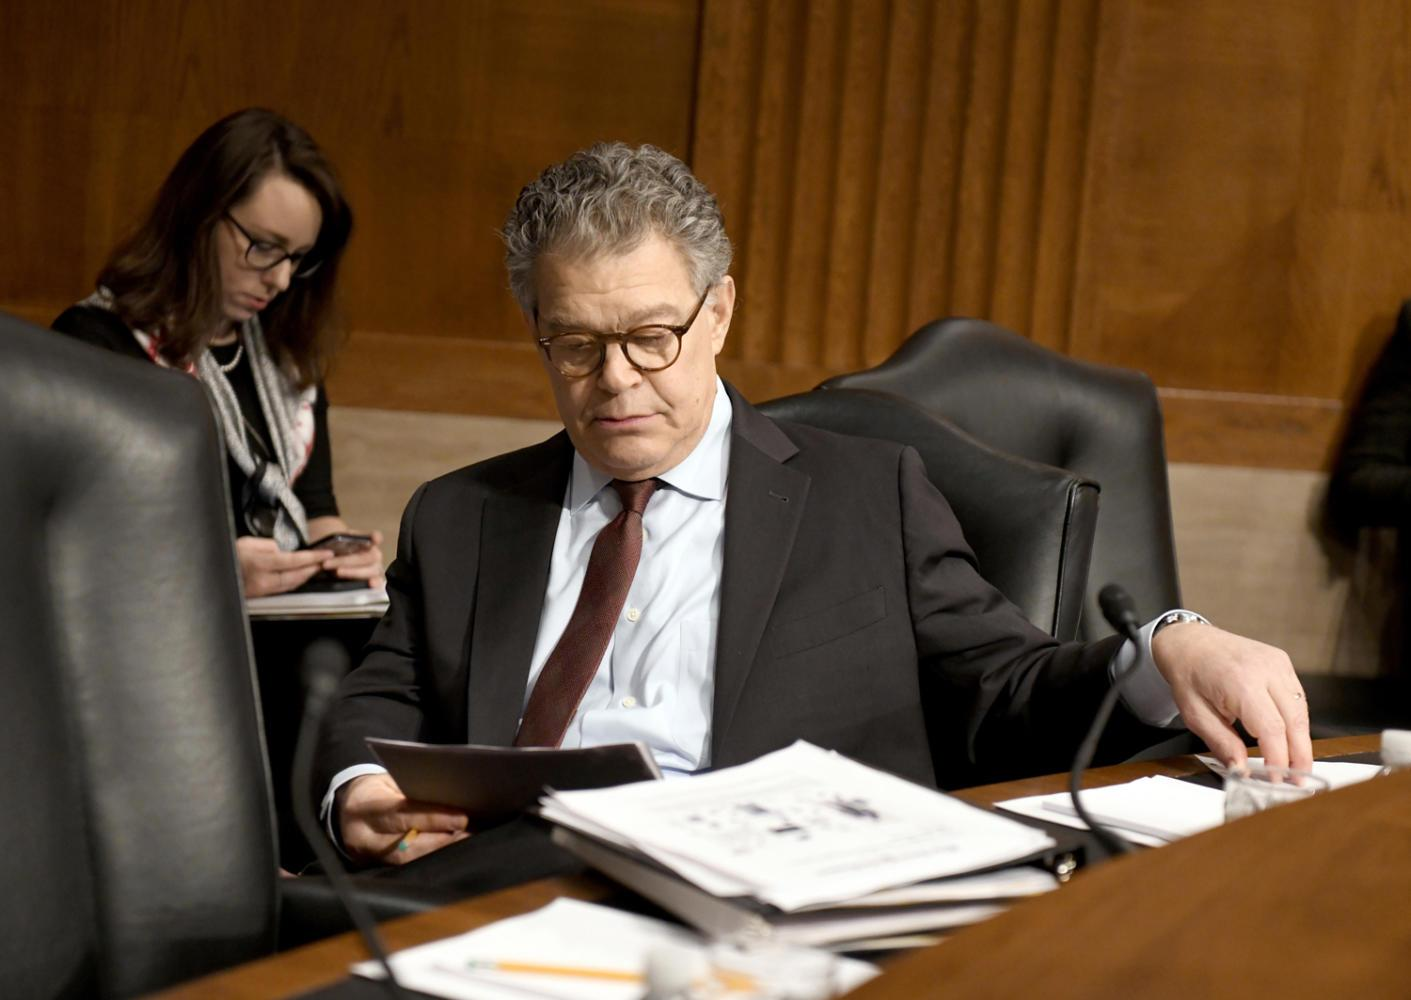 U.S. Sen. Al Franken, D-Minn., looks over his notes prior to hearing Alex M. Azar II testify before the Senate Committee on Health, Education, Labor and Pensions on his nomination to be Secretary of Health and Human Services Wednesday, Nov. 29, 2017 on Capitol Hill in Washington, D.C. A series of Senate Democratic women issued calls for Franken to resign Wednesday morning. (Ron Sachs/CNP/Zuma Press/TNS)